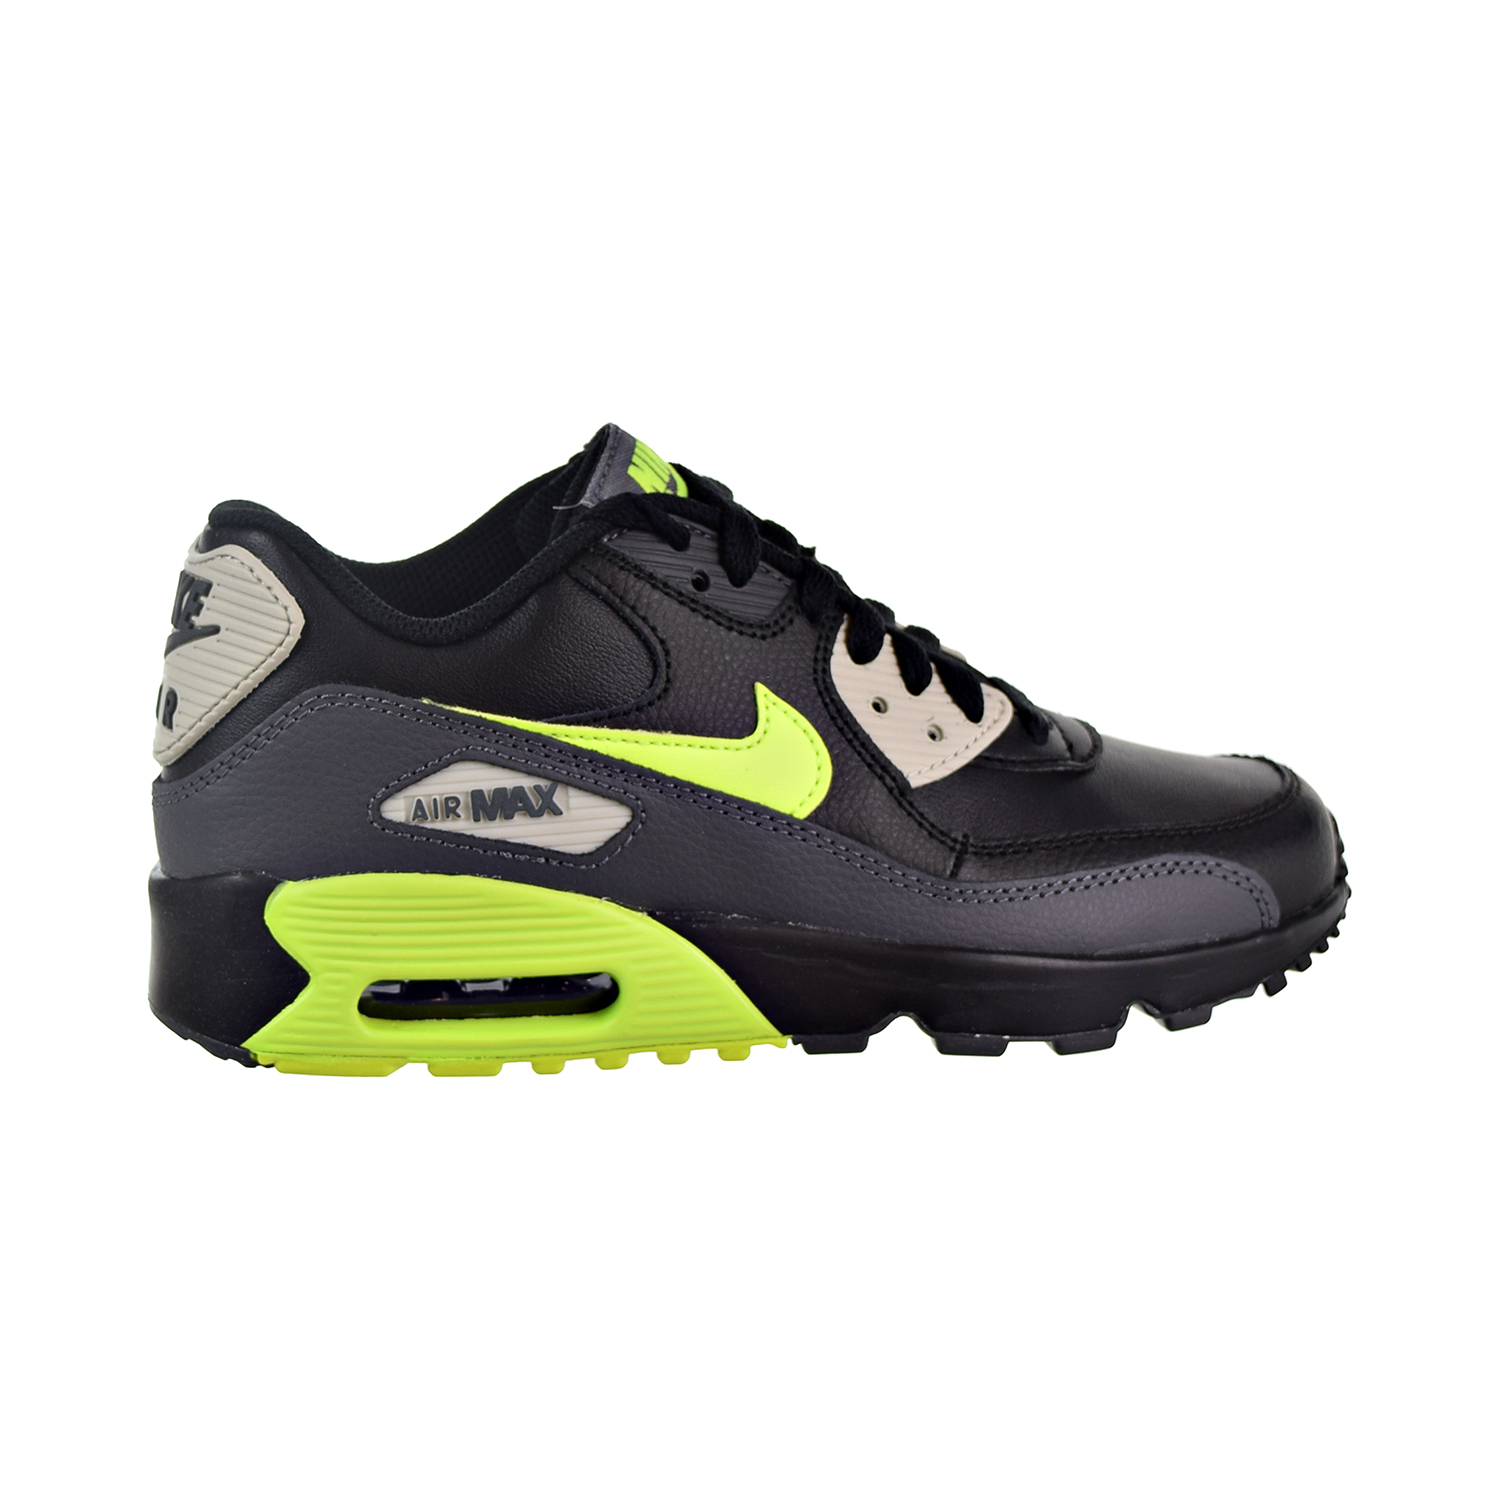 Details about Nike Air Max 90 Leather Big Kids' Shoes Dark Grey Volt Black 833412 023